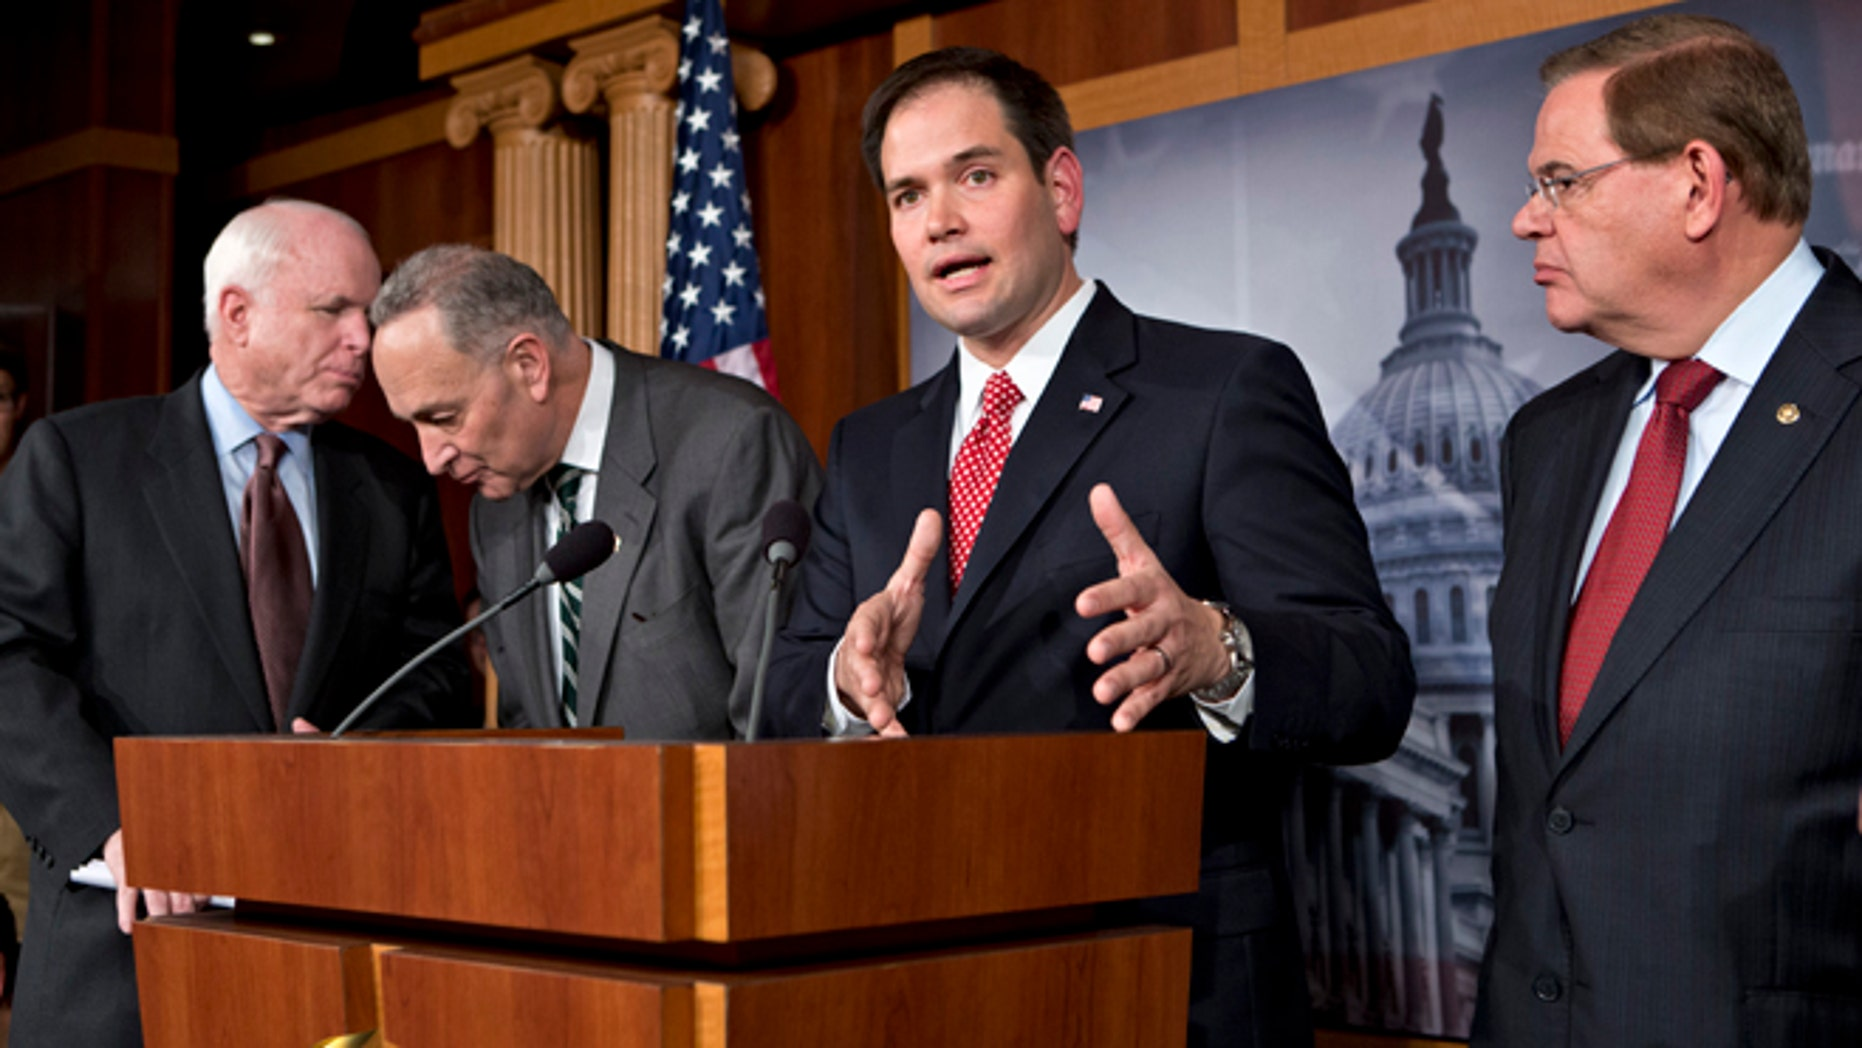 FILE â In this Jan. 28, 2013, file photo Sen. Marco Rubio, R-Fla., center, speaks at a Capitol Hill news conference on immigration legislation with a members of a bipartisan group of leading senators, including, from left, Sen. John McCain, R-Ariz., Sen. Chuck Schumer, D-N.Y. and Sen. Robert Menendez, D-N.J., in Washington. After months of arduous closed-door negotiations, the âGang of Eightâ senators equally divided between the two parties had no issues left to resolve in person, and no more negotiating sessions were planned. Remaining details were left to aides, who were at work completing drafts of the bill. (AP Photo/J. Scott Applewhite, File)